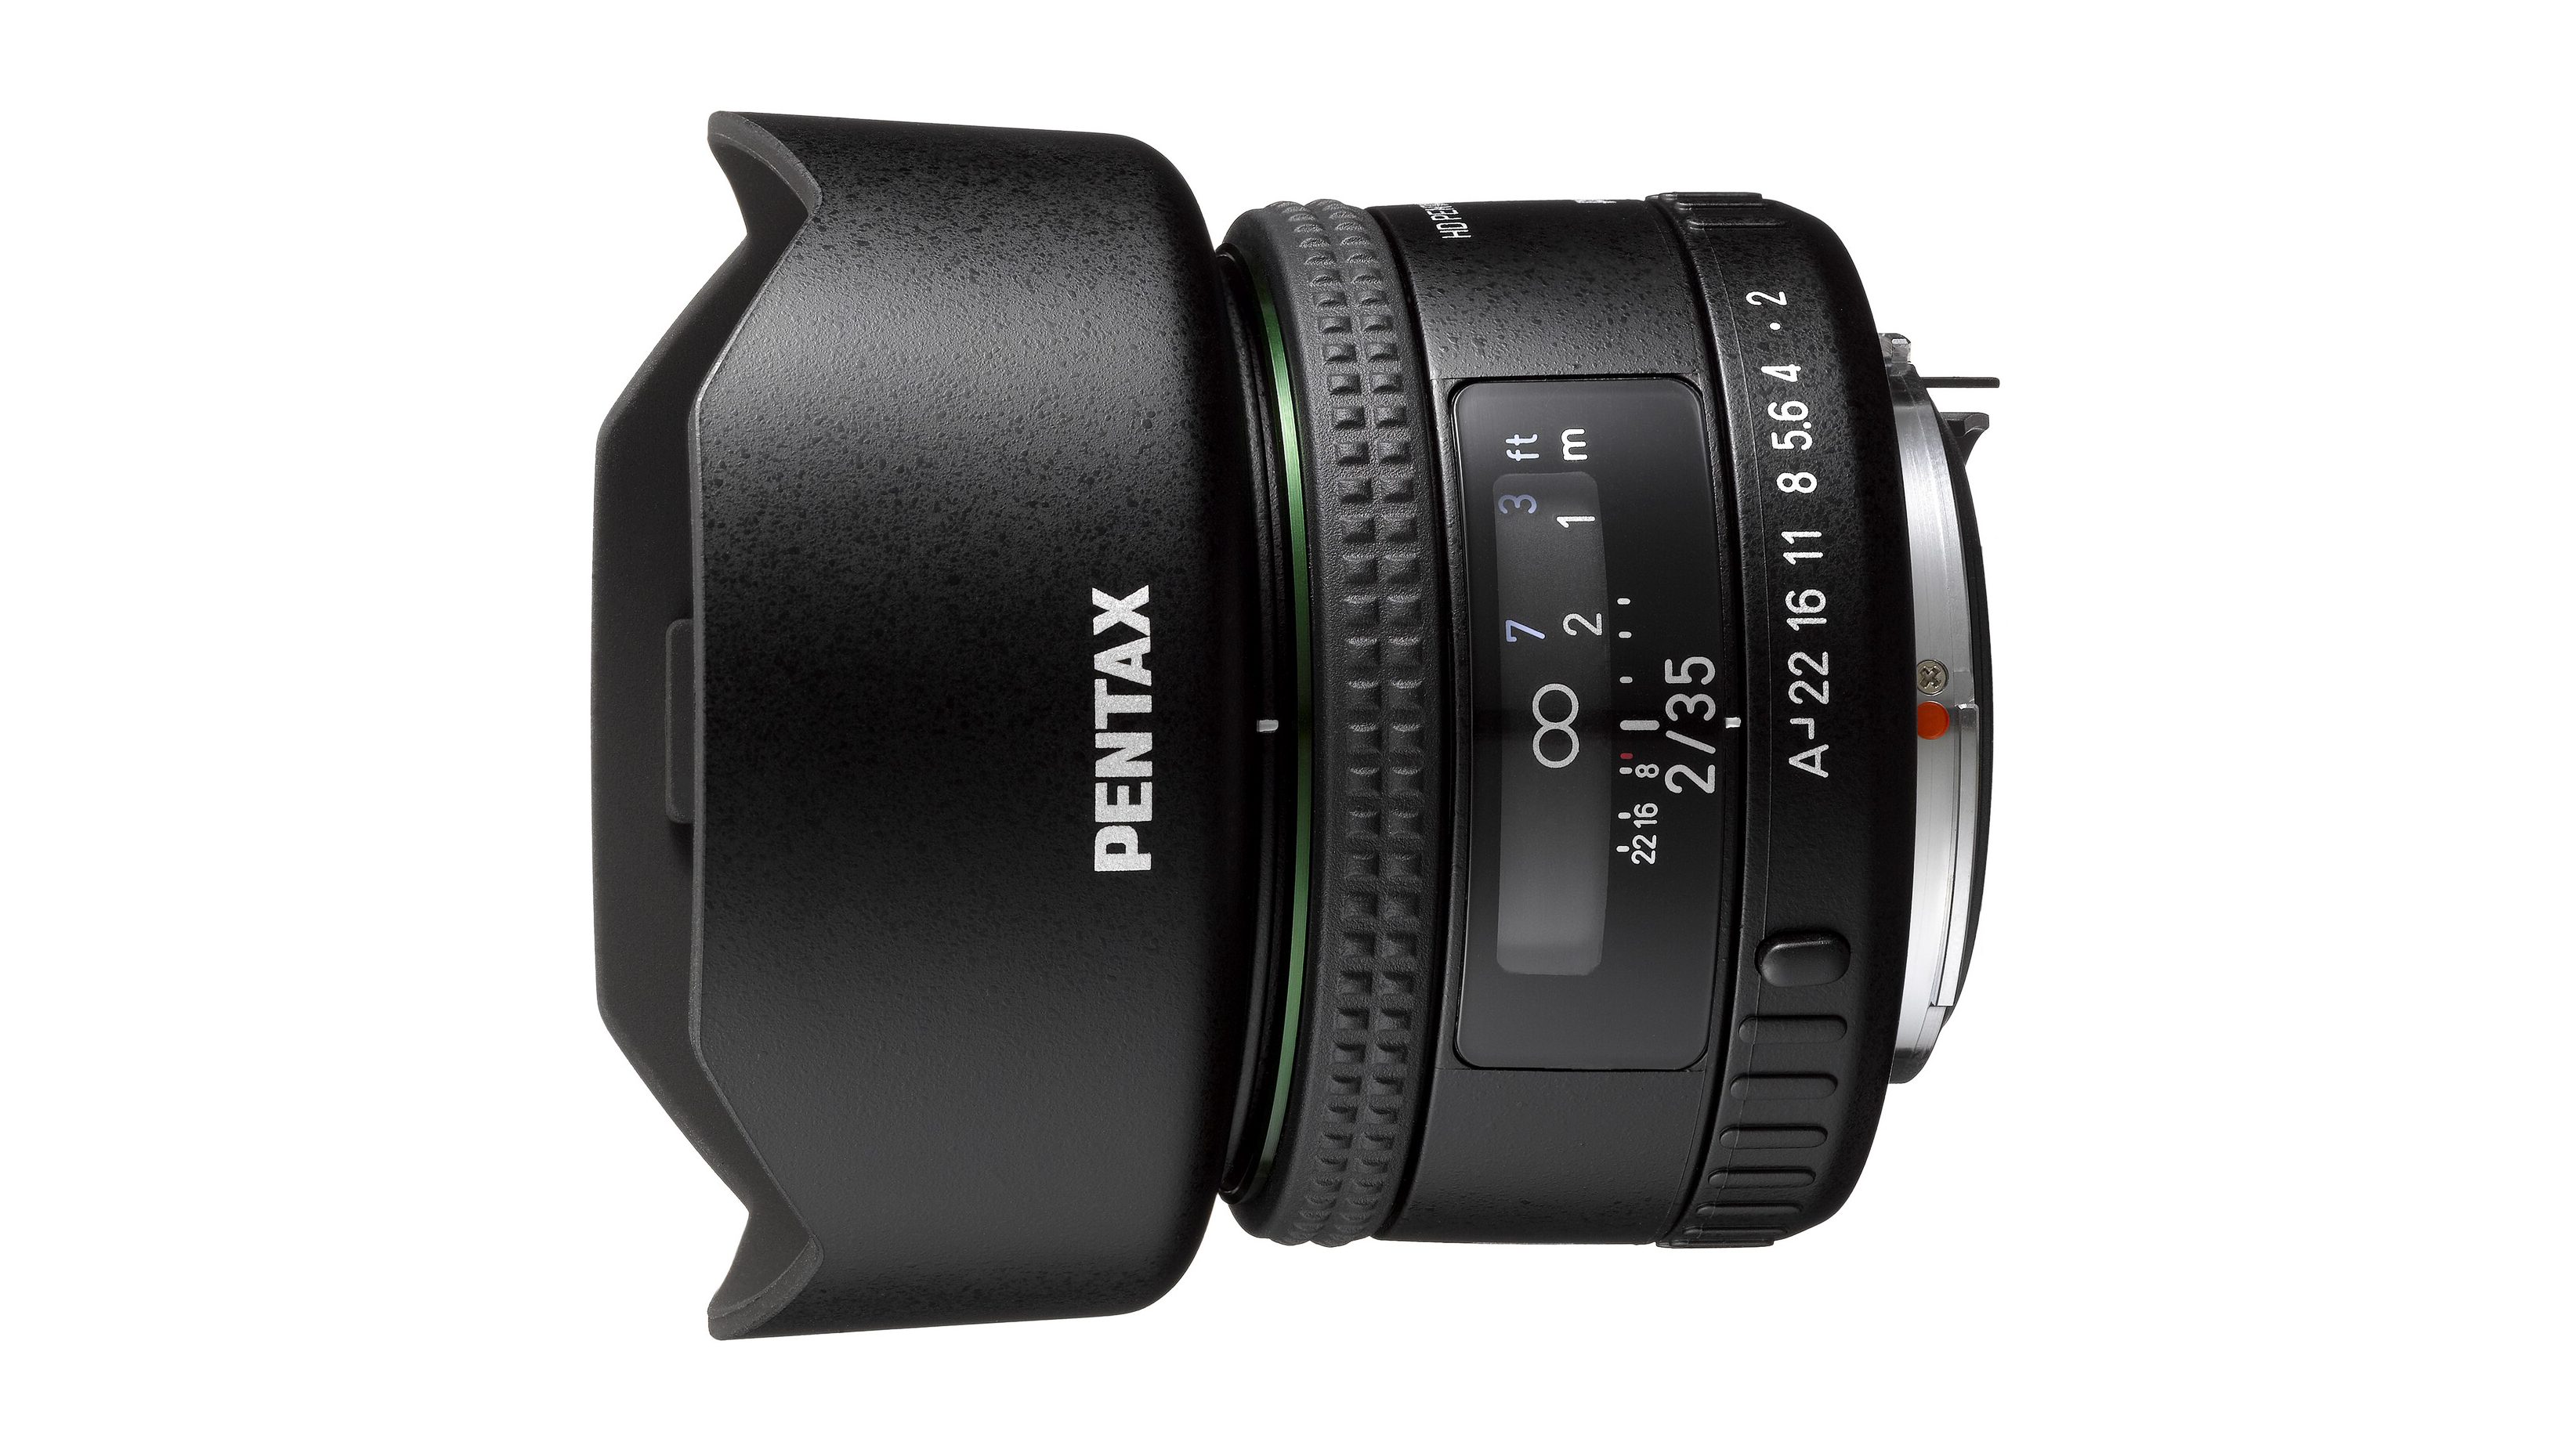 Pentax FA 35mm F2 – classic wide-angle gets an HD facelift